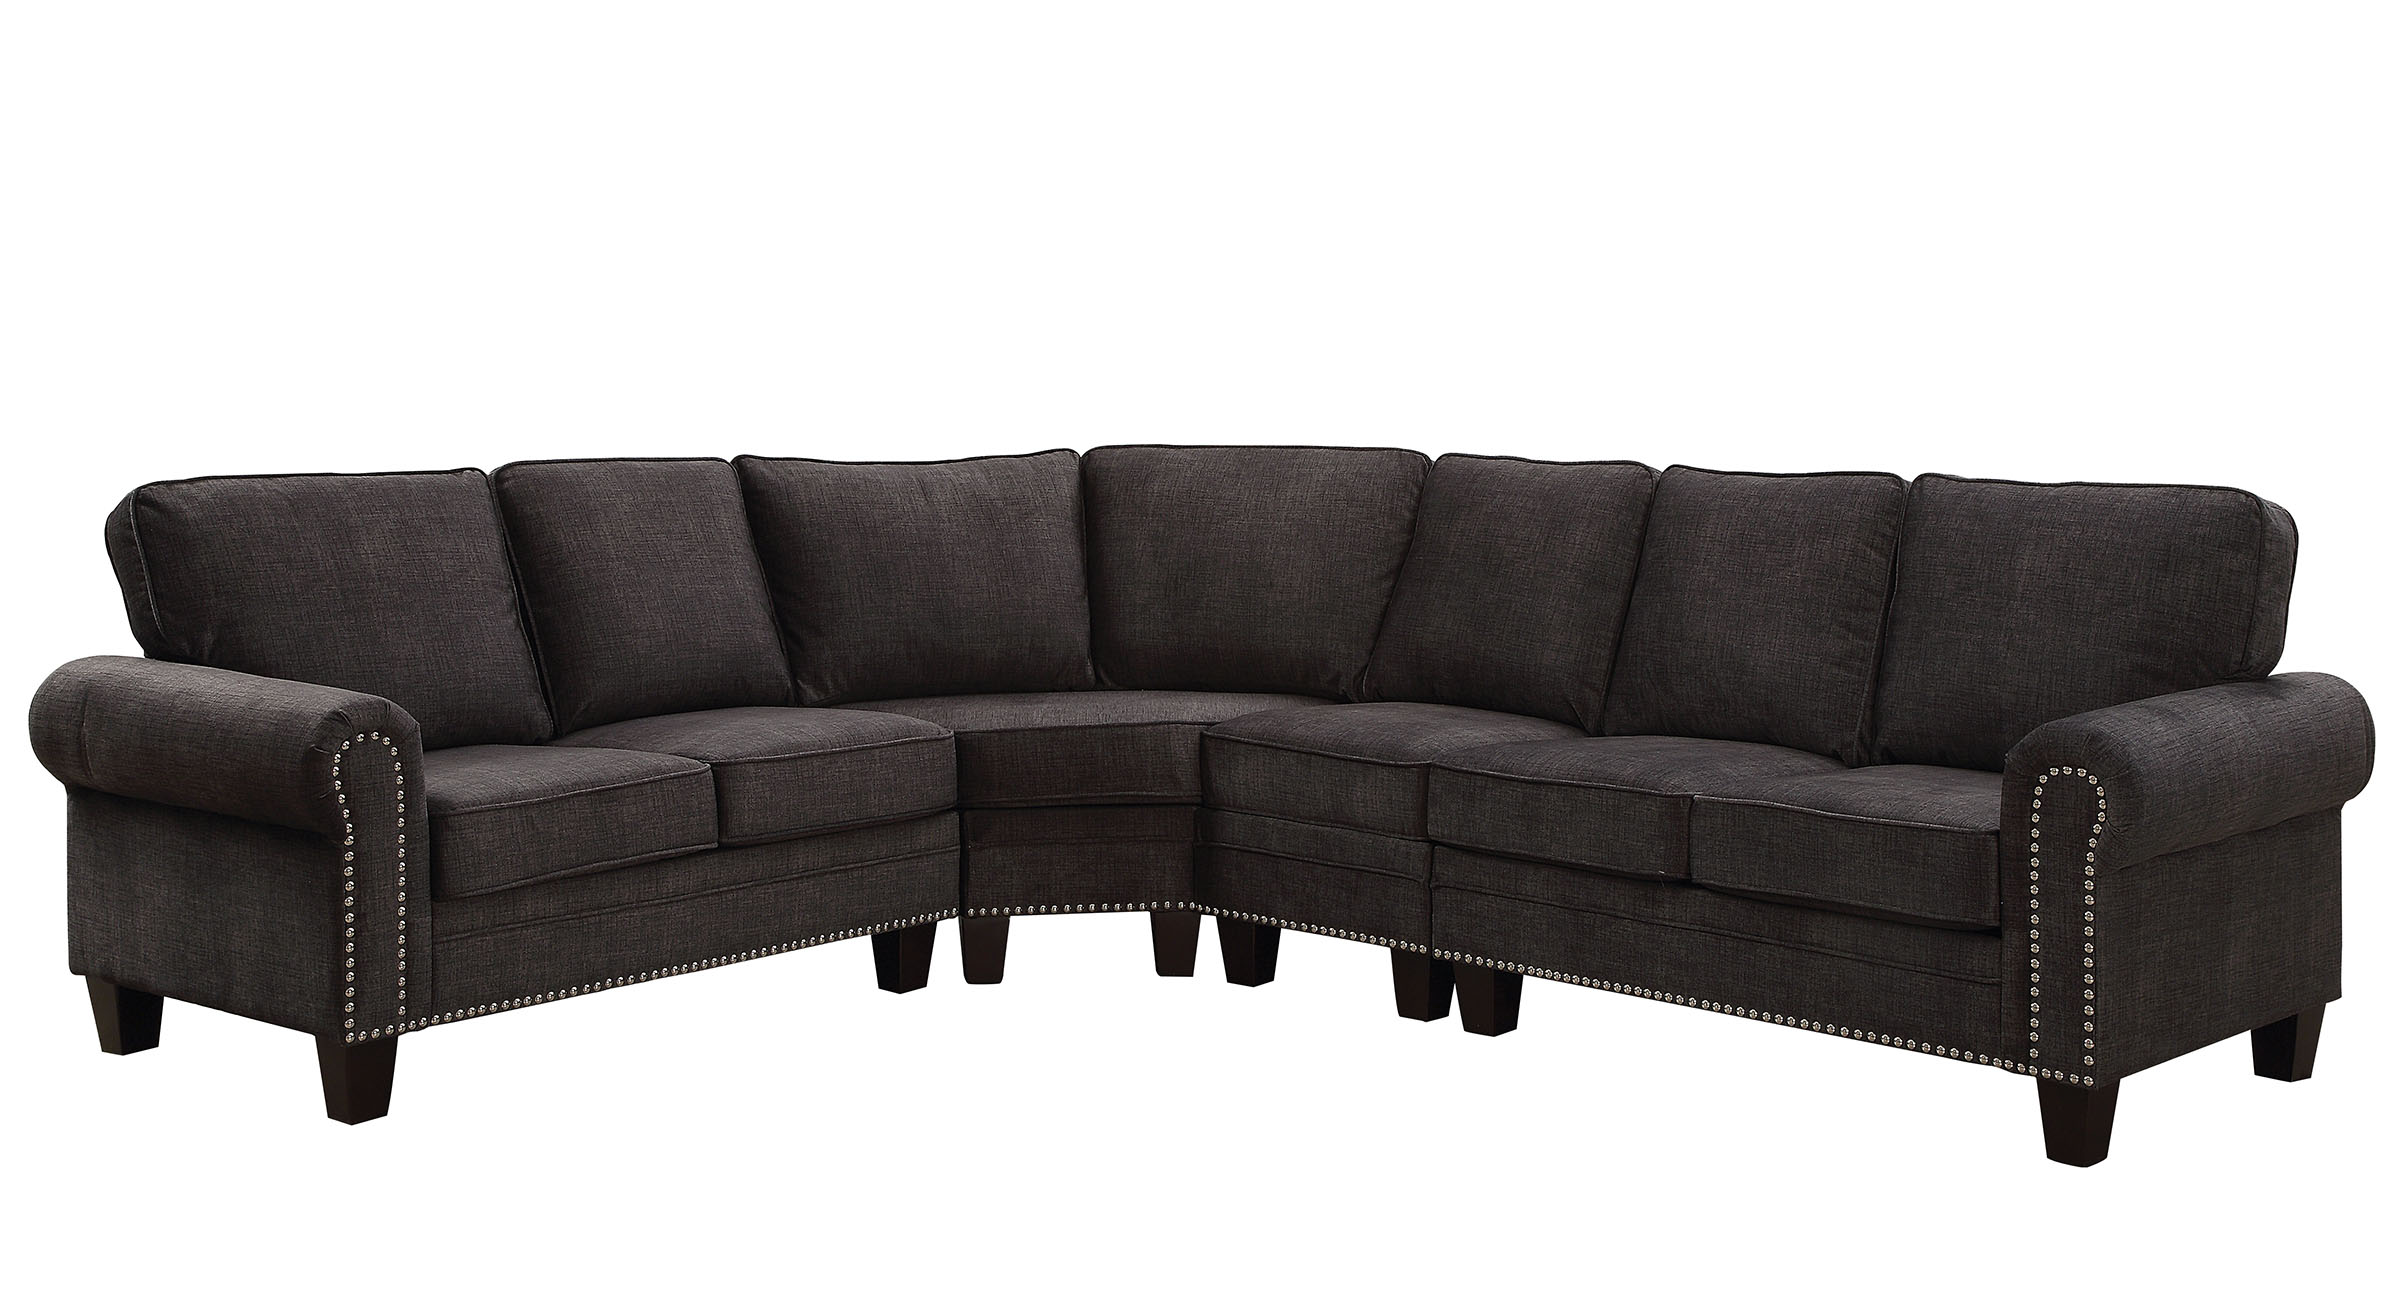 rolled arm sofa with nailhead trim 3 2 1 set designs elwick 6885 dark gray sectional